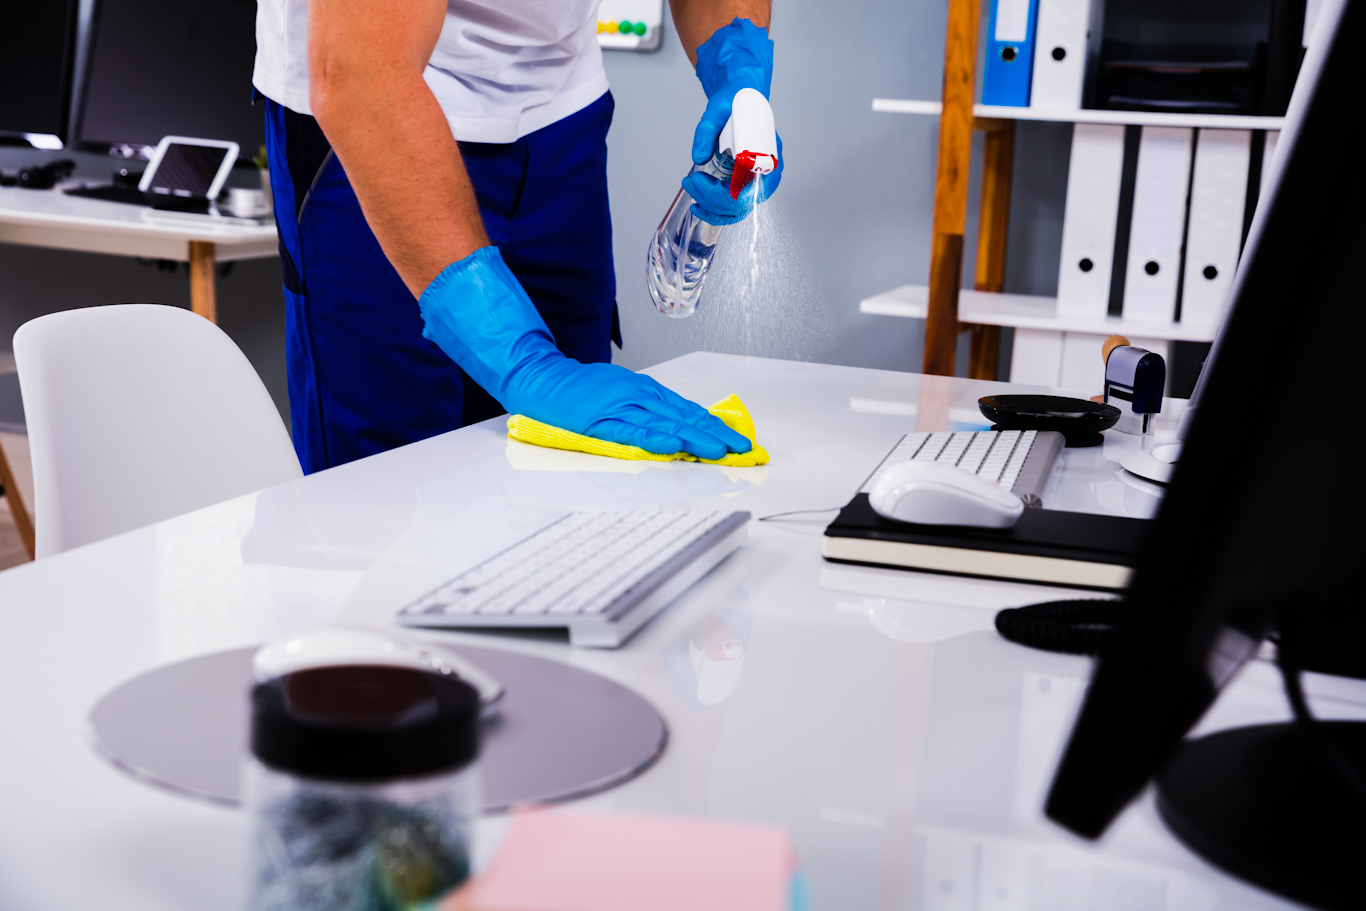 Benefits of Using a Professional Office Cleaning Service